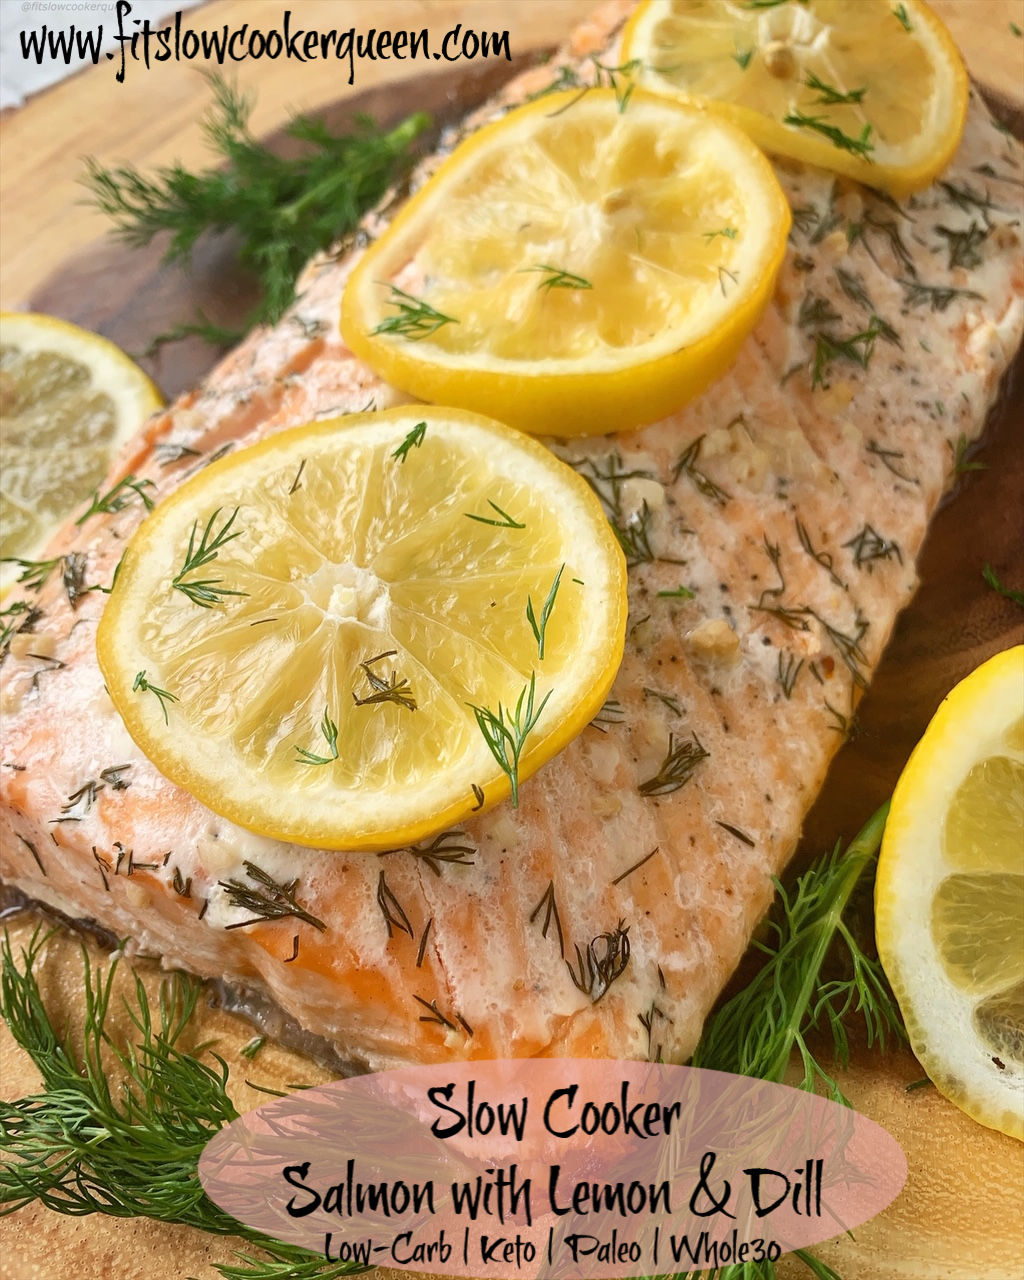 Slow Cooker Salmon With Lemon Dill Low Carb Paleo Whole30 Fit Slow Cooker Queen